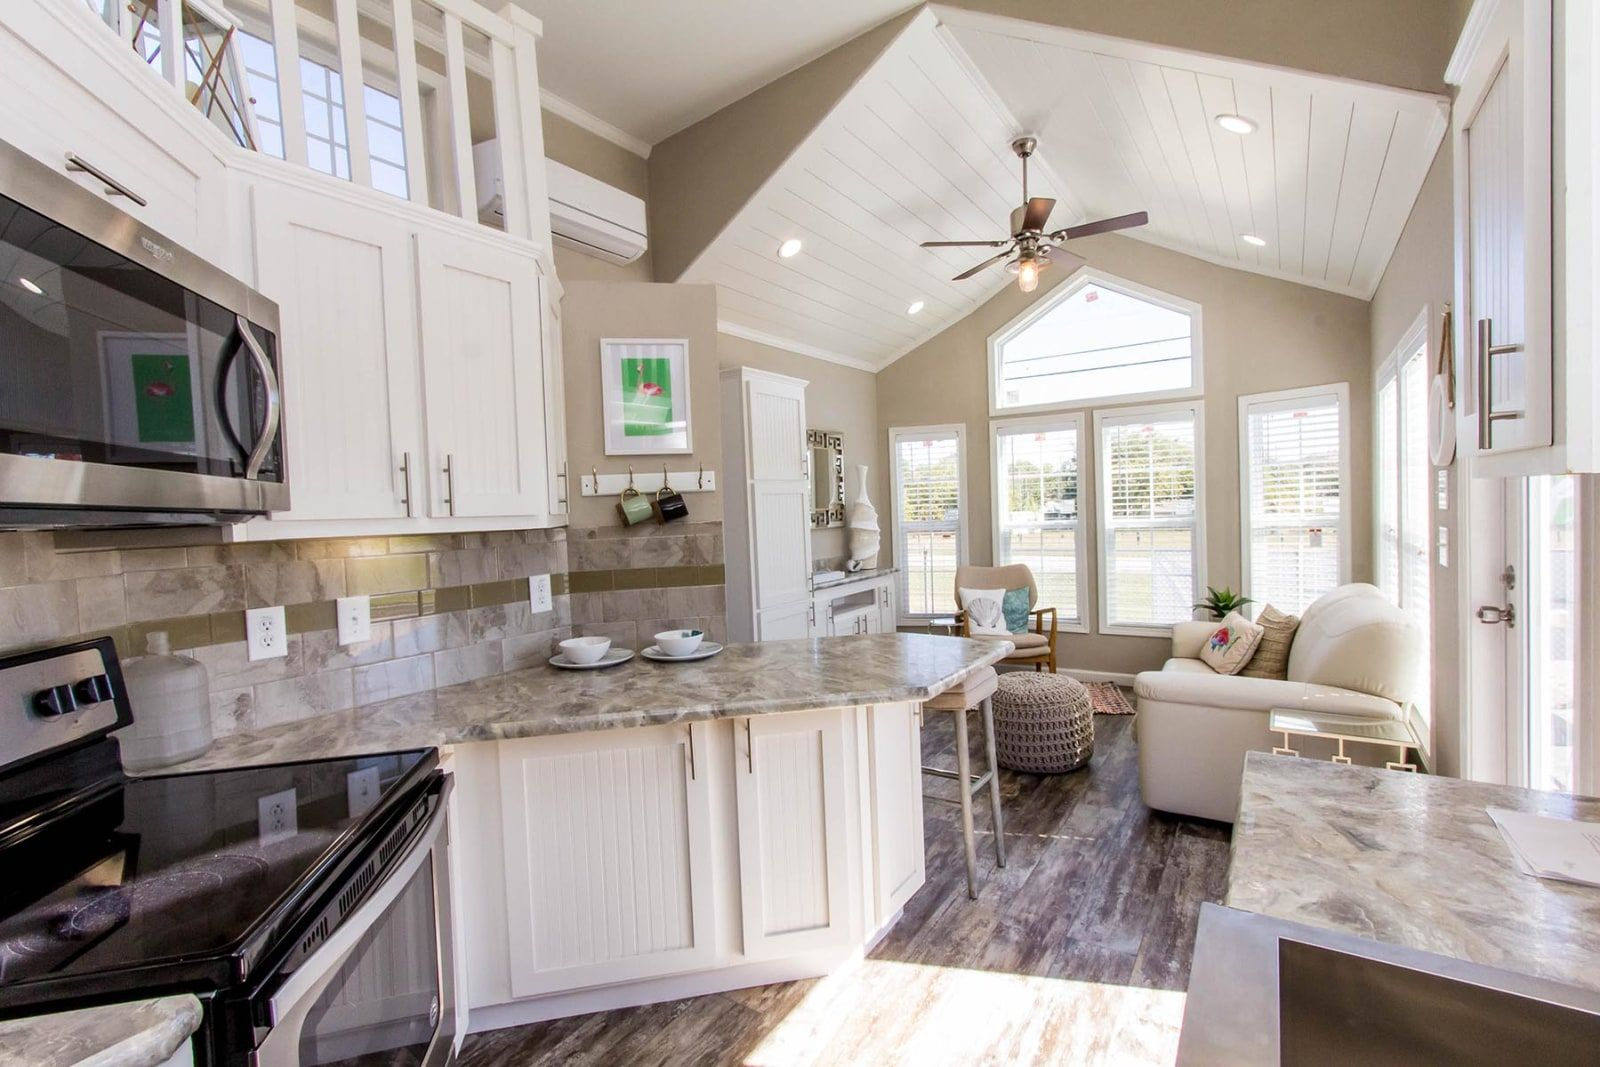 what are park model homes?